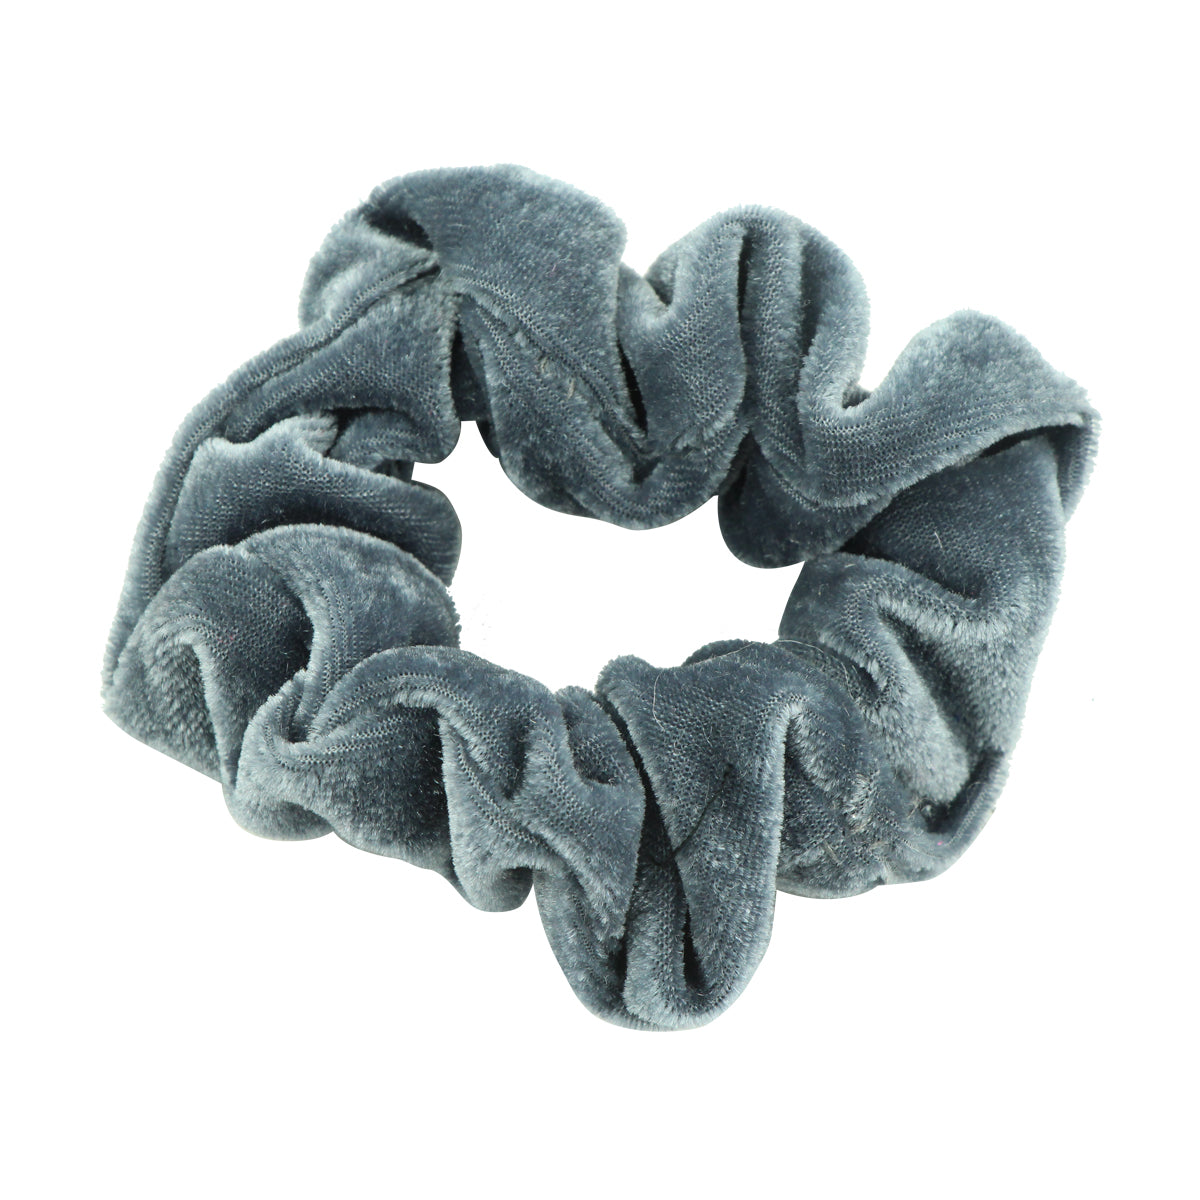 grey velvet hair scrunchies women elastic hairband ponytail hair holders5497 - SOHOBUCKS CO.,LIMITED